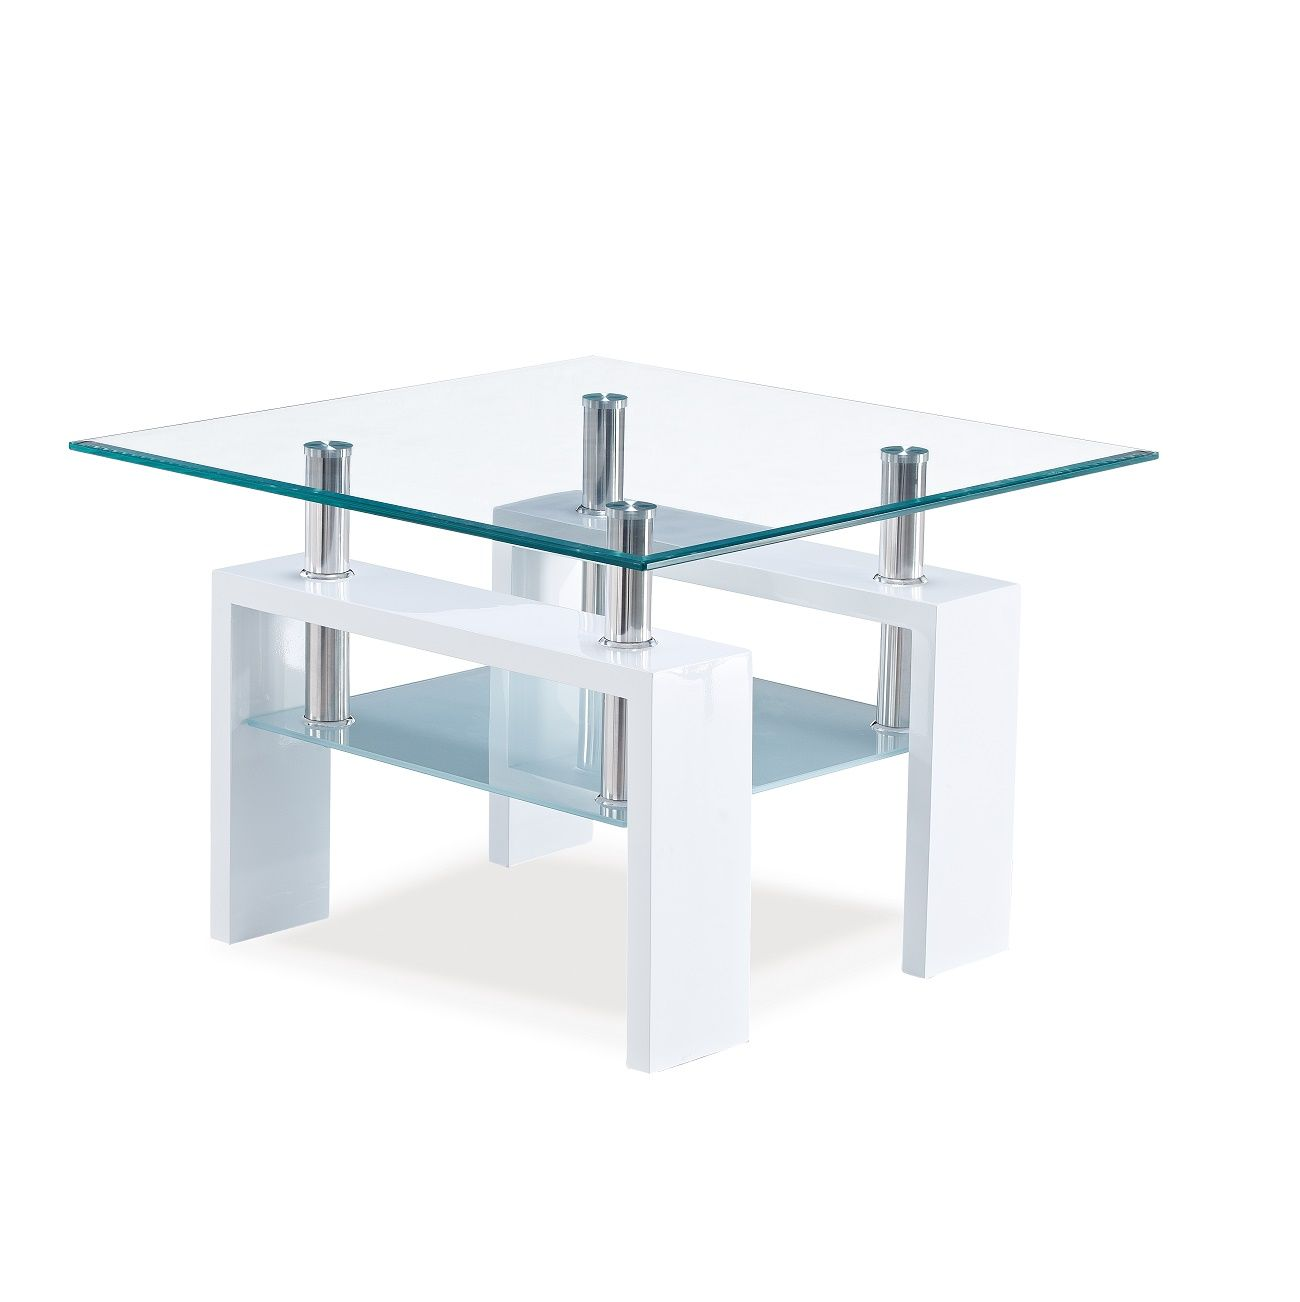 Glossy White Contemporary Clear Temper Glass Sleek Modern: T648 End Table This Contemporary End Table Boast A Sleek